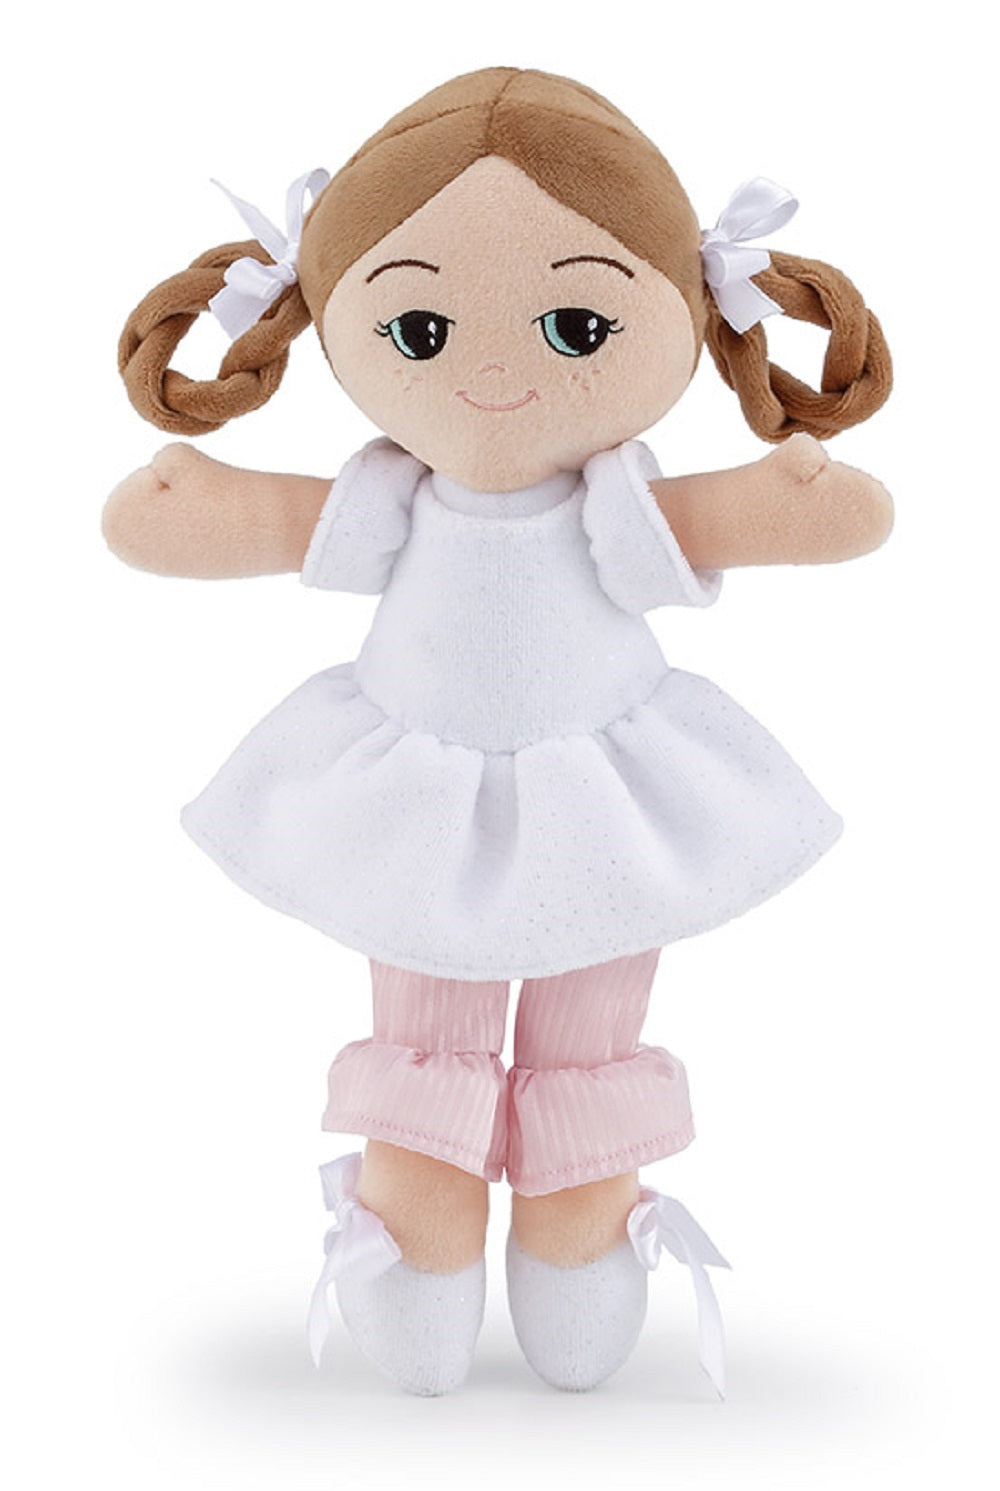 Ballerina Shoes Rag Doll White - 24cm